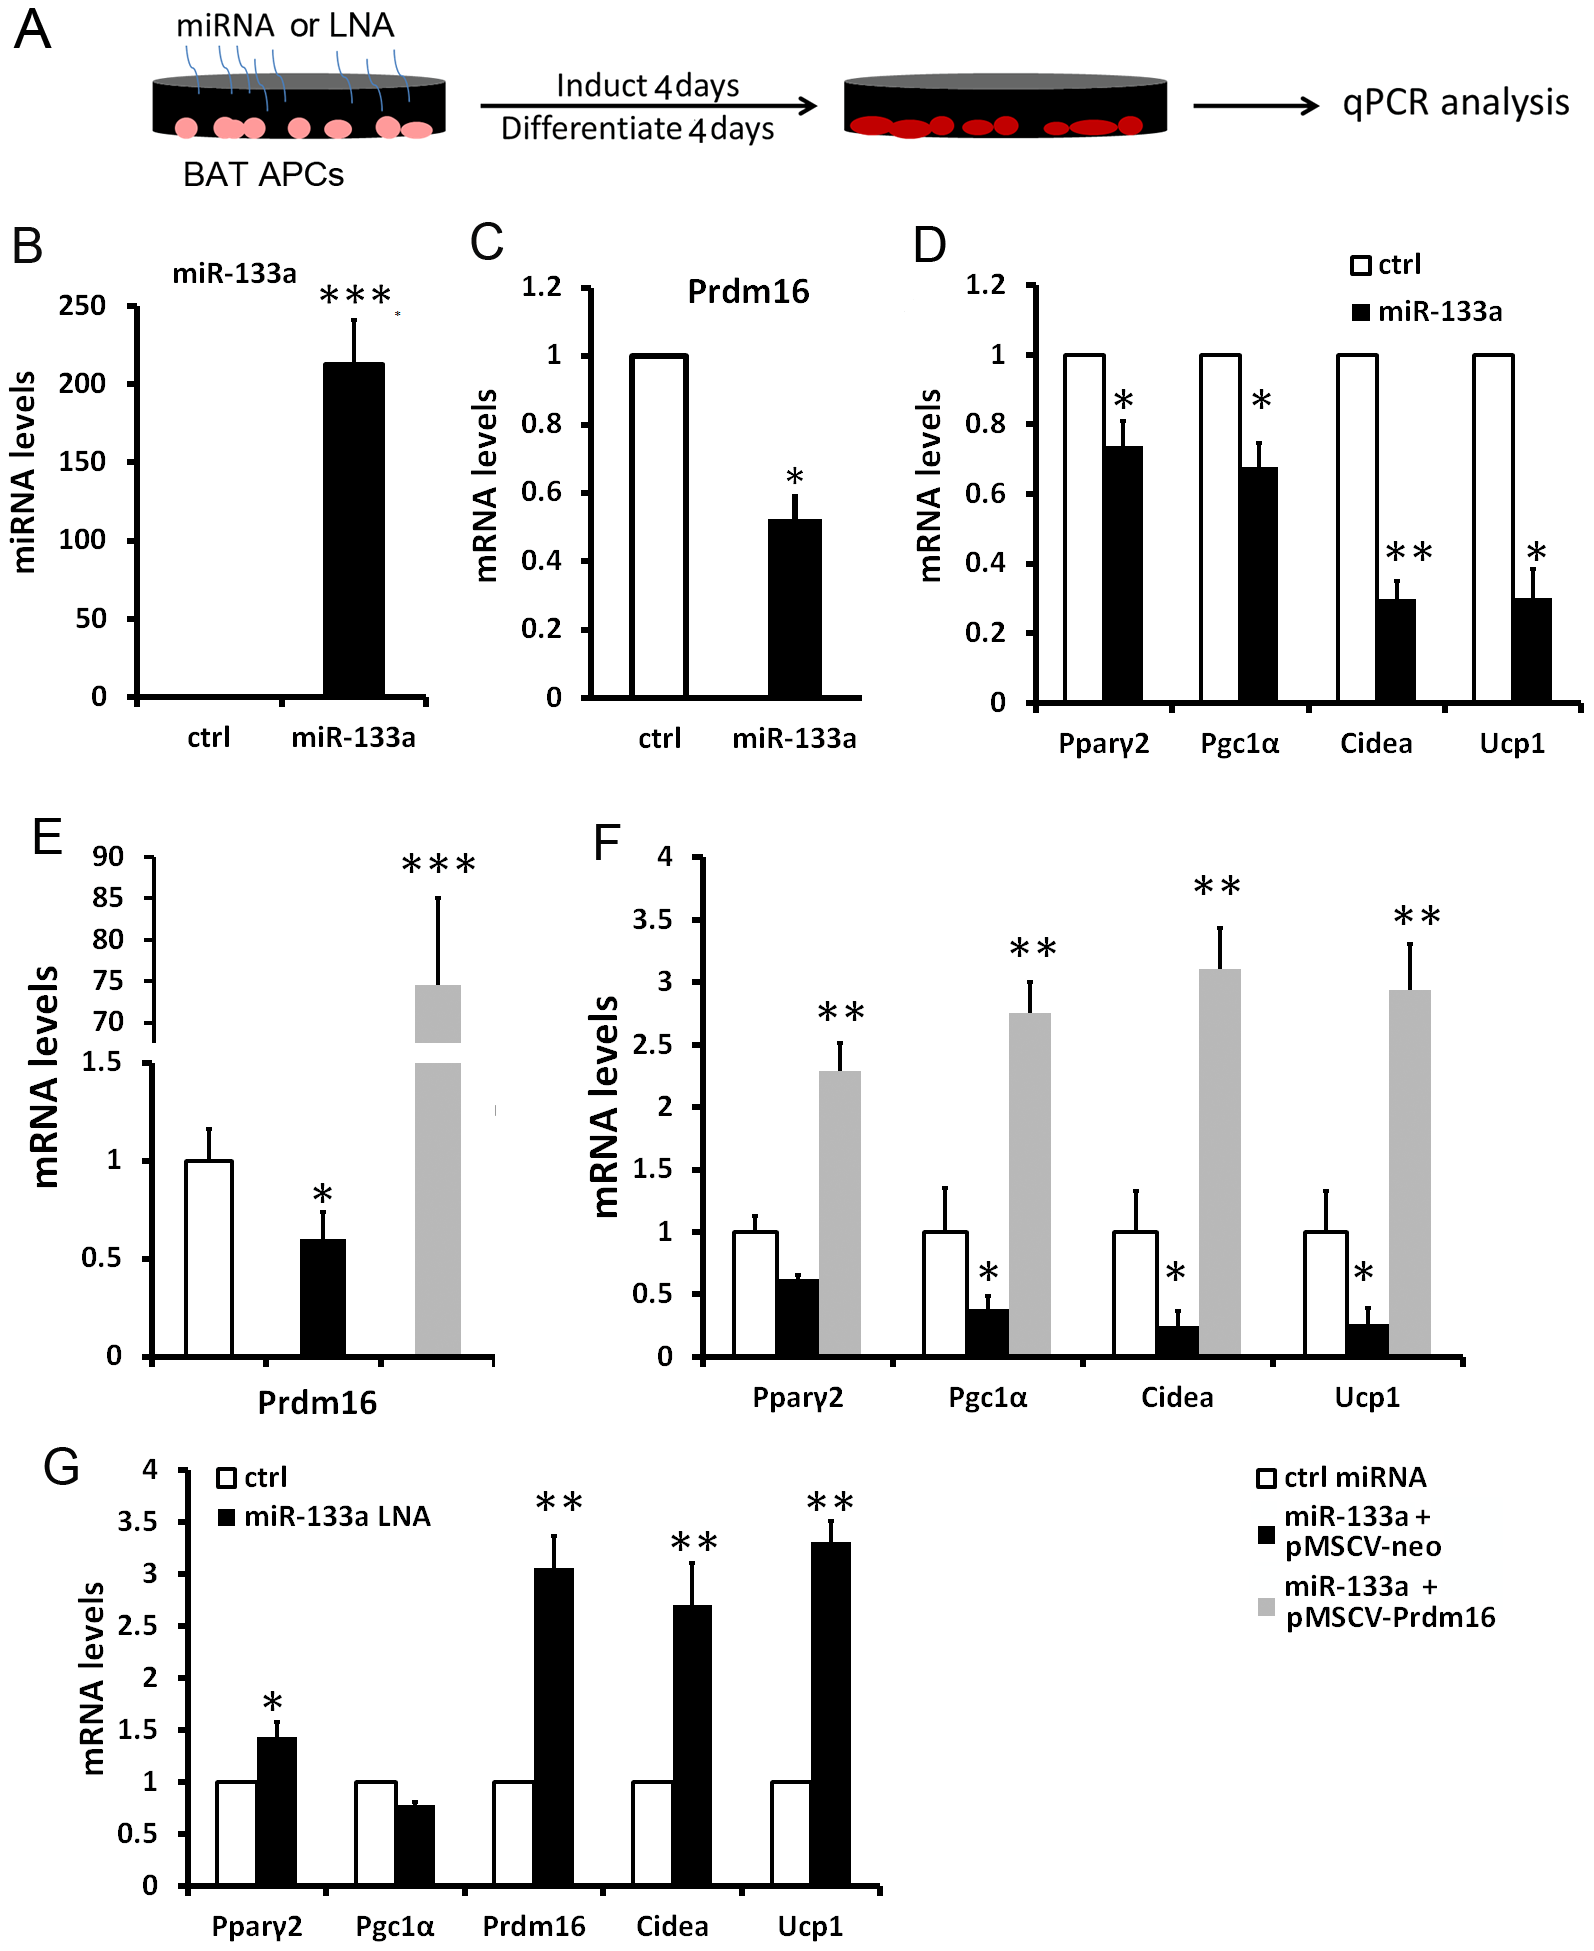 miR-133a inhibits brown adipocyte biogenesis of BAT progenitors.